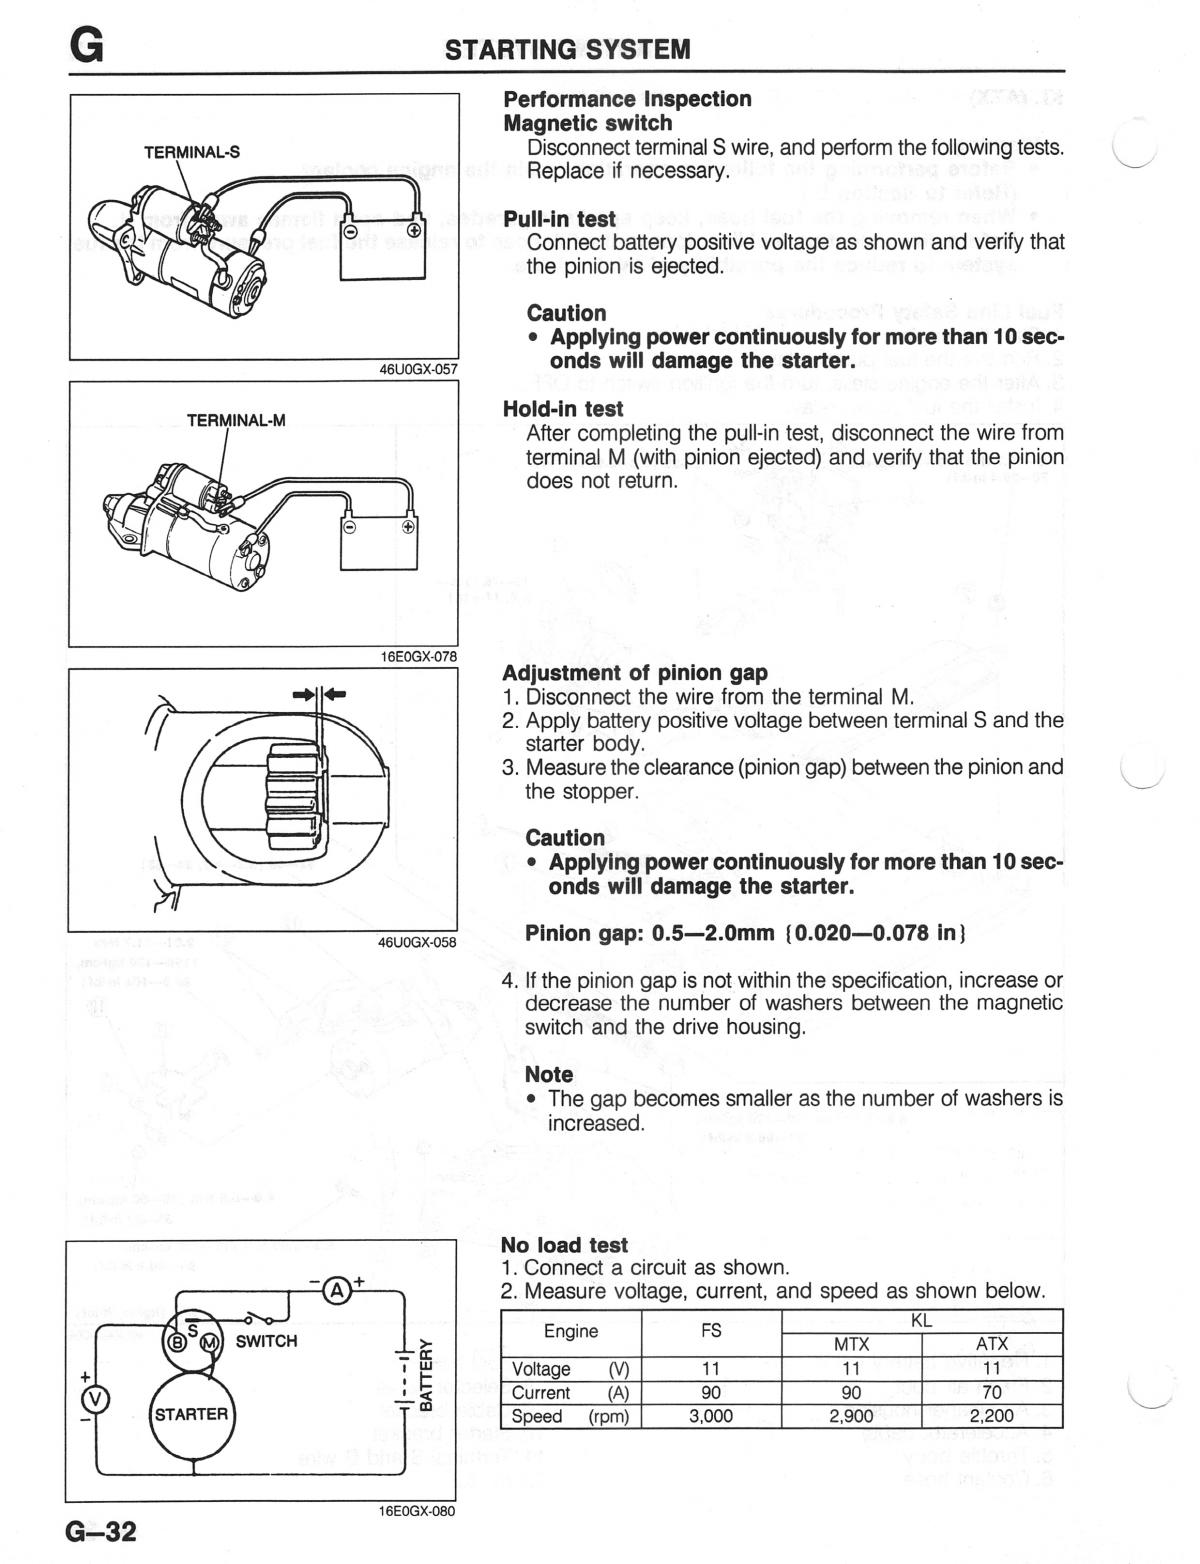 1999 Mazda 626 Starter Wiring Diagram Great Installation Of Kia Pride Engine 1996 Ignition Switch 1993 2002 2l I4 Mazda626 Net Rh 1995